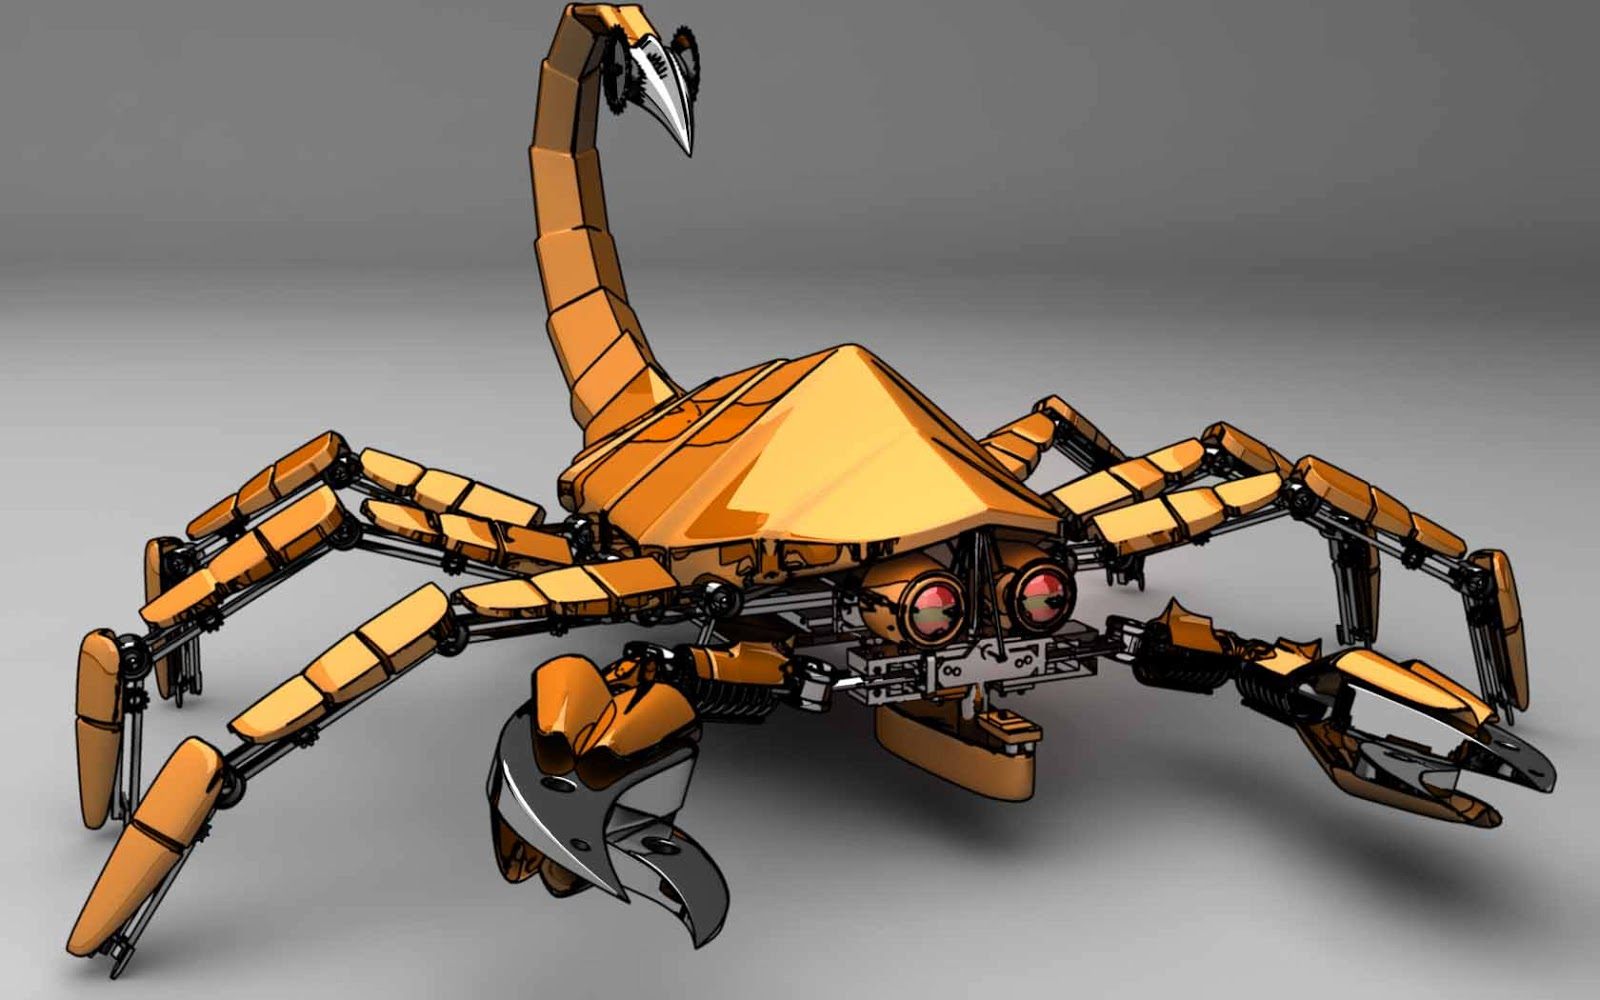 Scorpion Robot HD Wallpapers